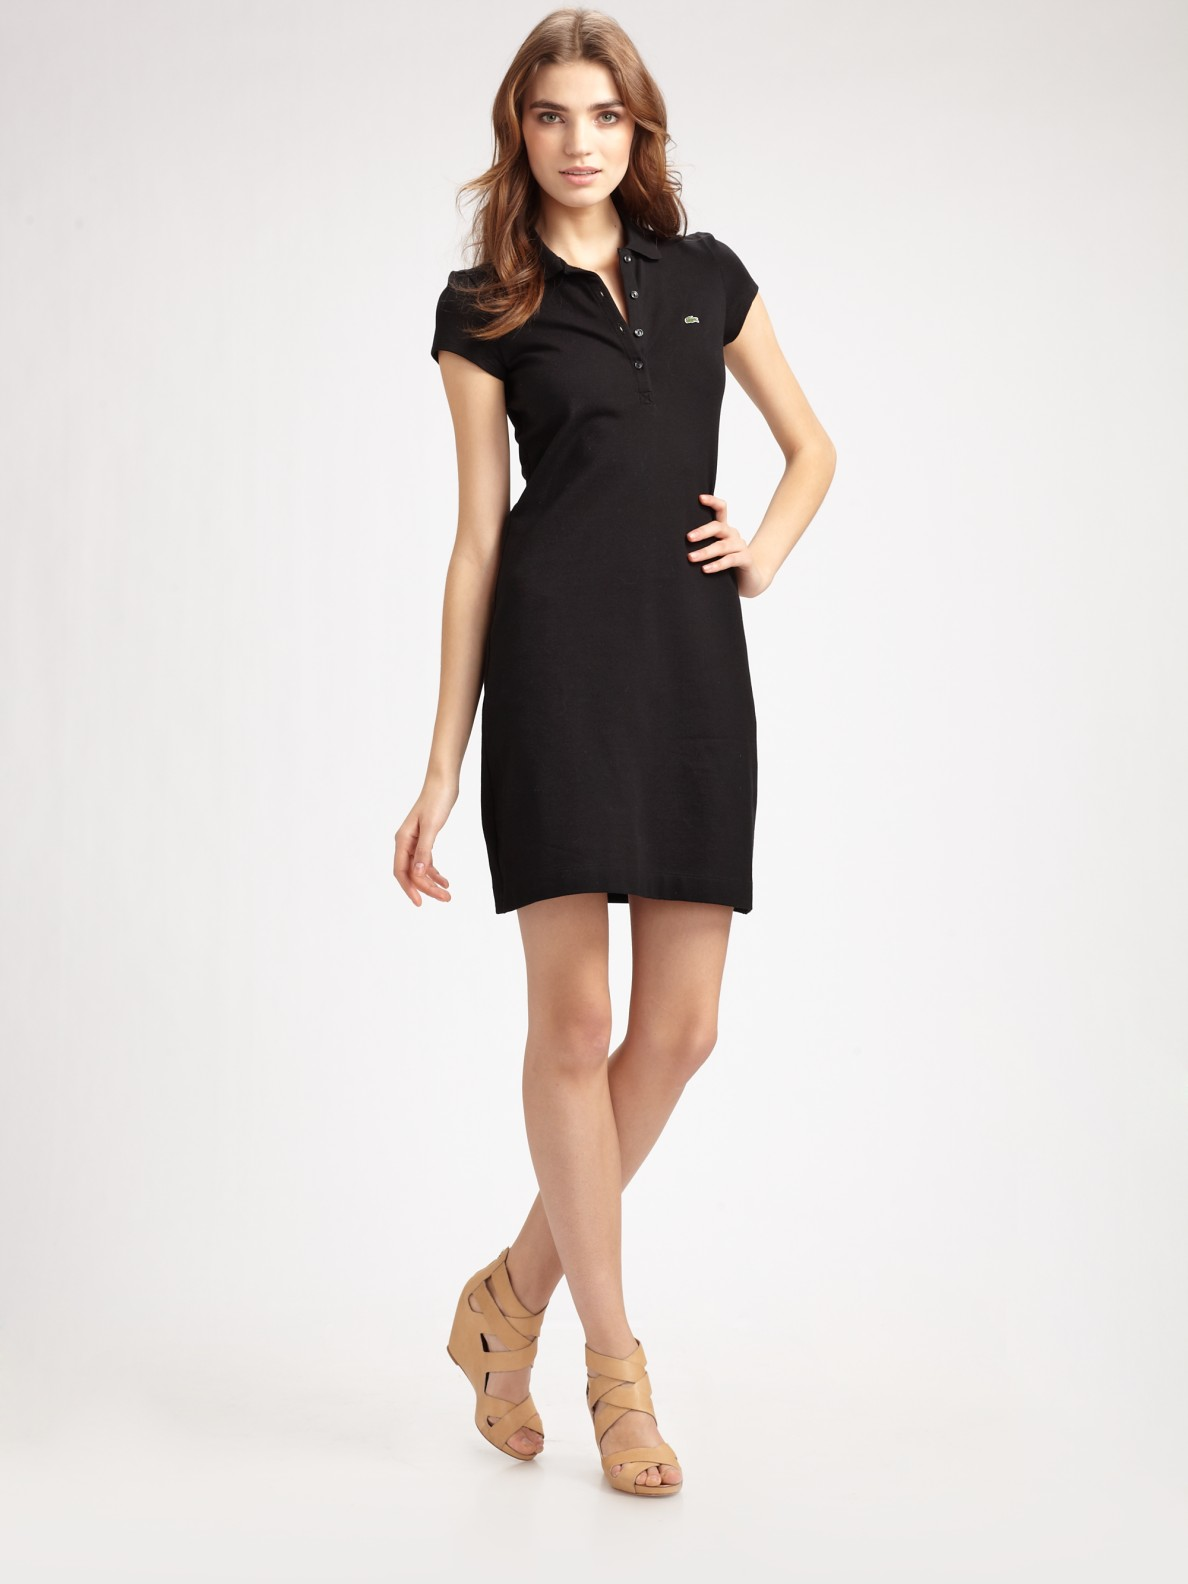 Lyst Lacoste Stretch Cotton Polo Dress In Black